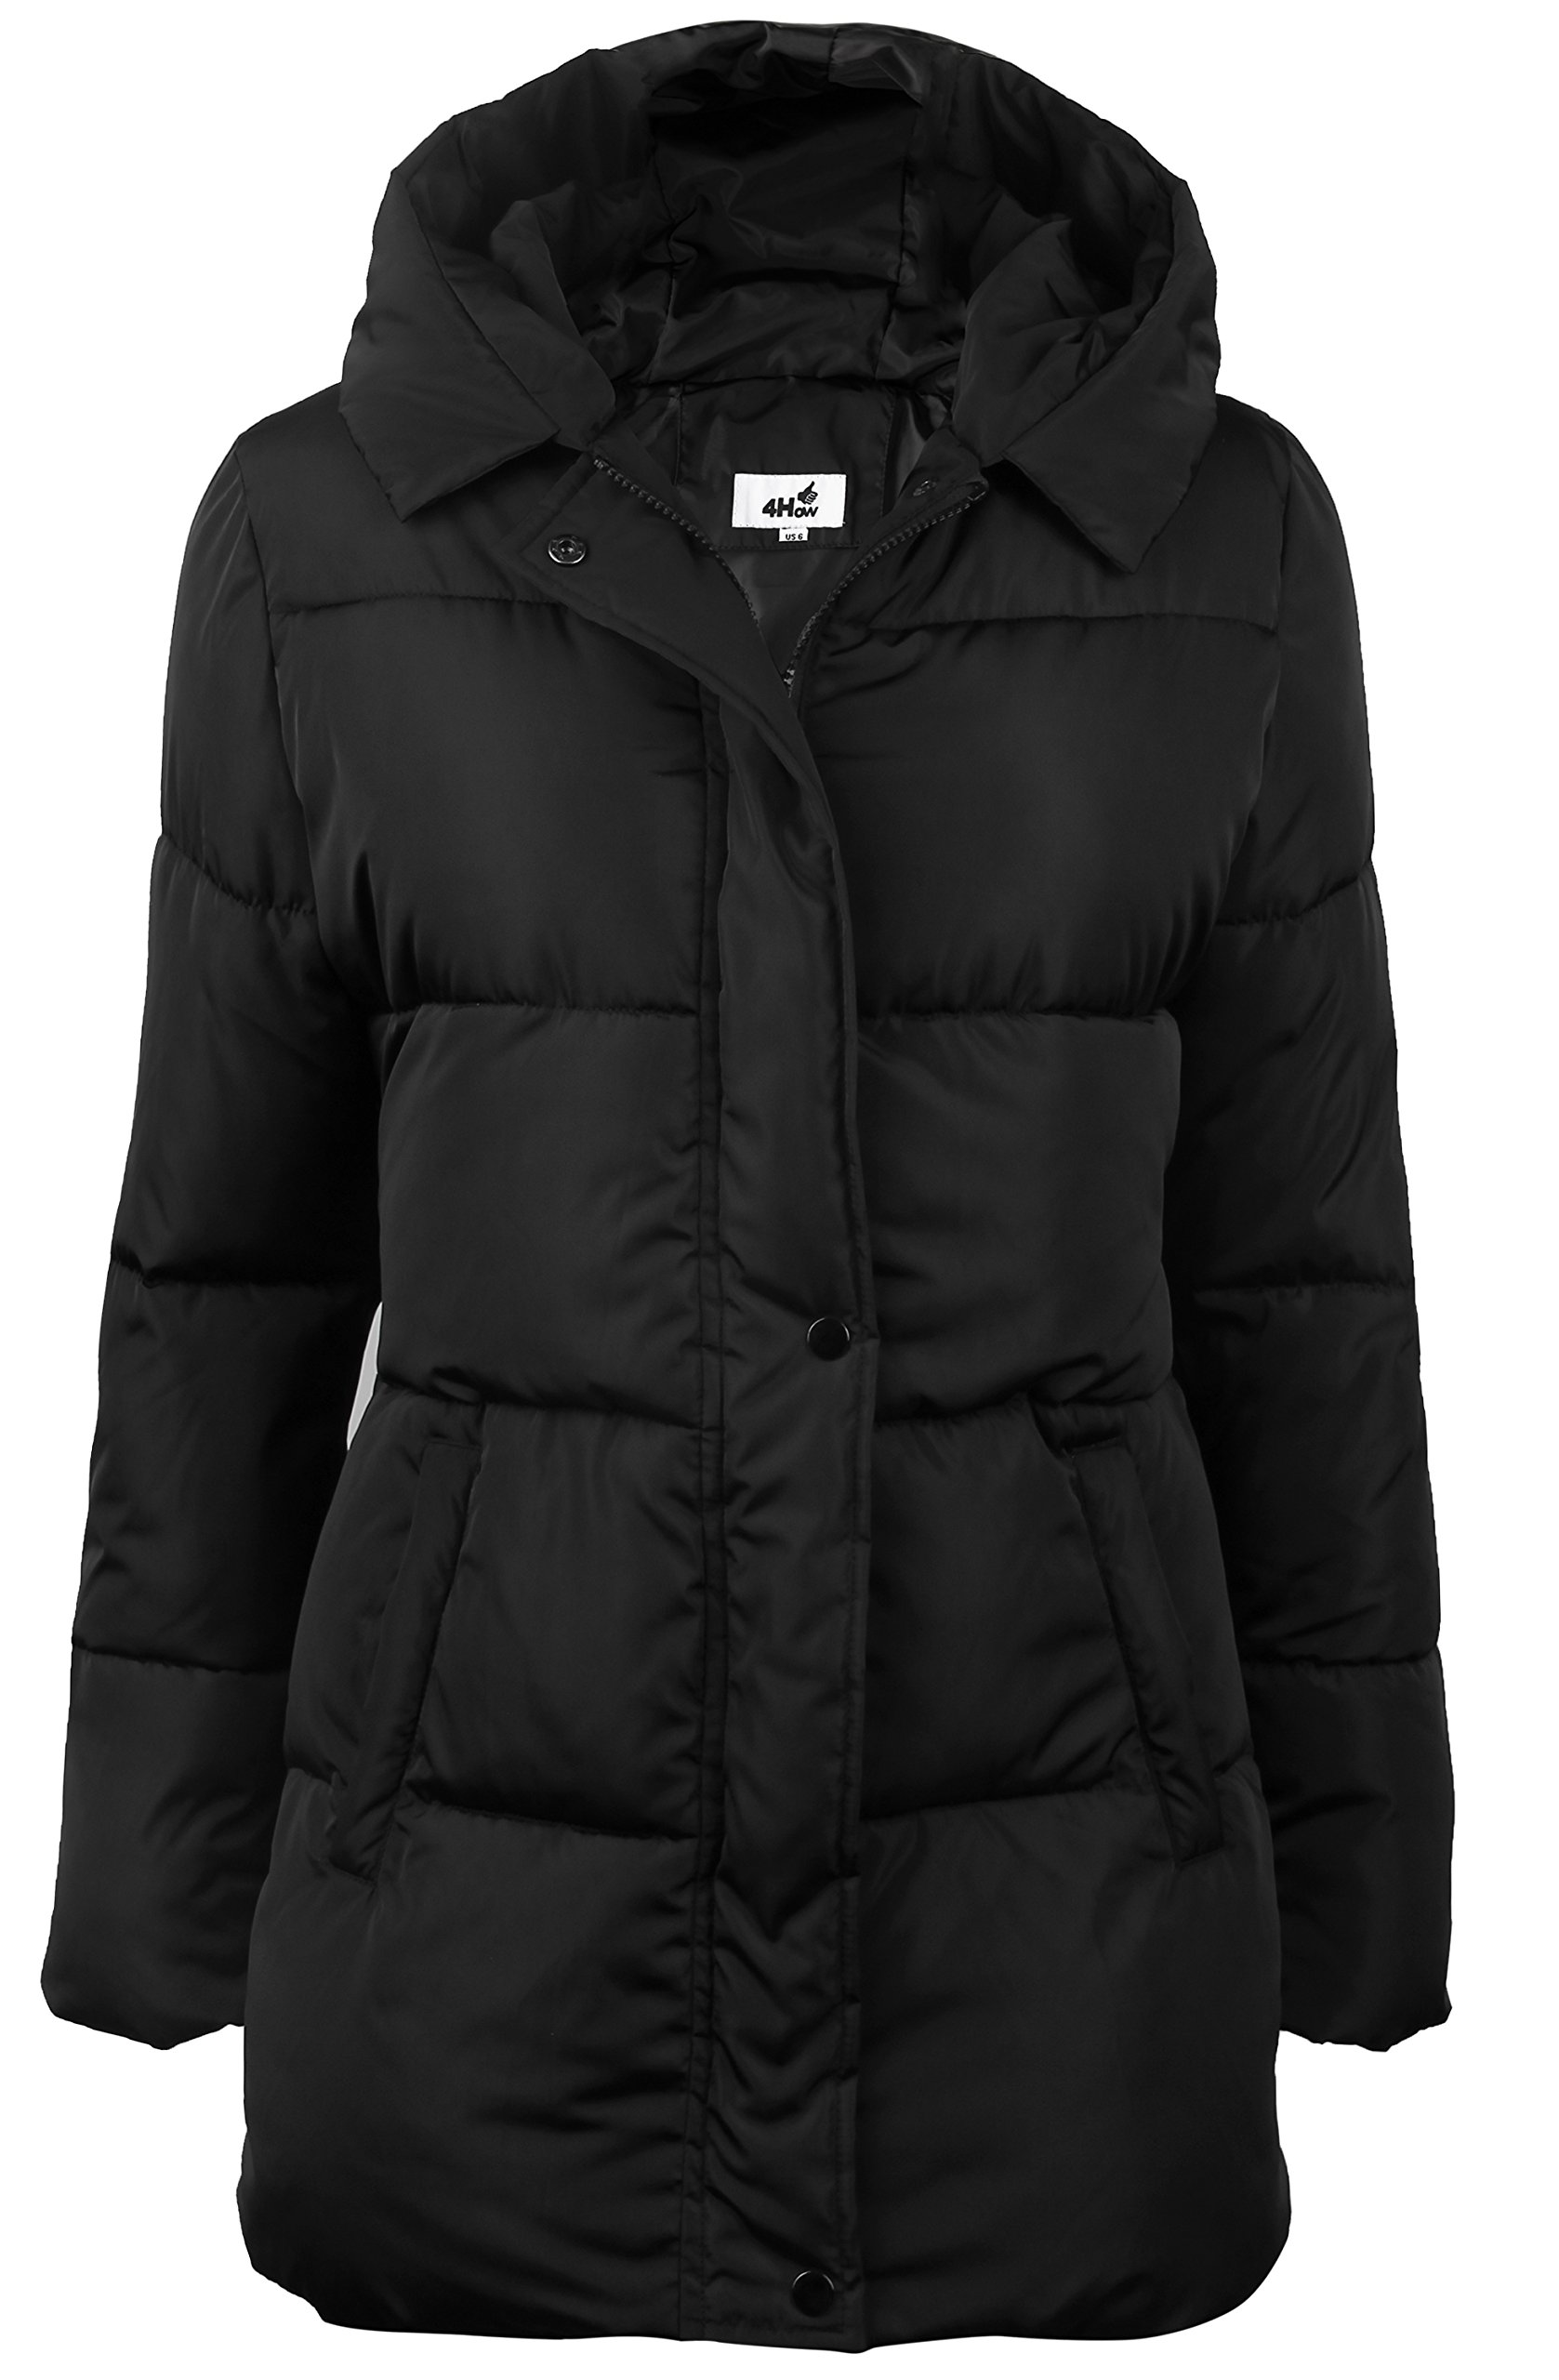 4HOW Women's Hooded Packable Puffer Down Jacket Winter Parka Coat Black US Size 10